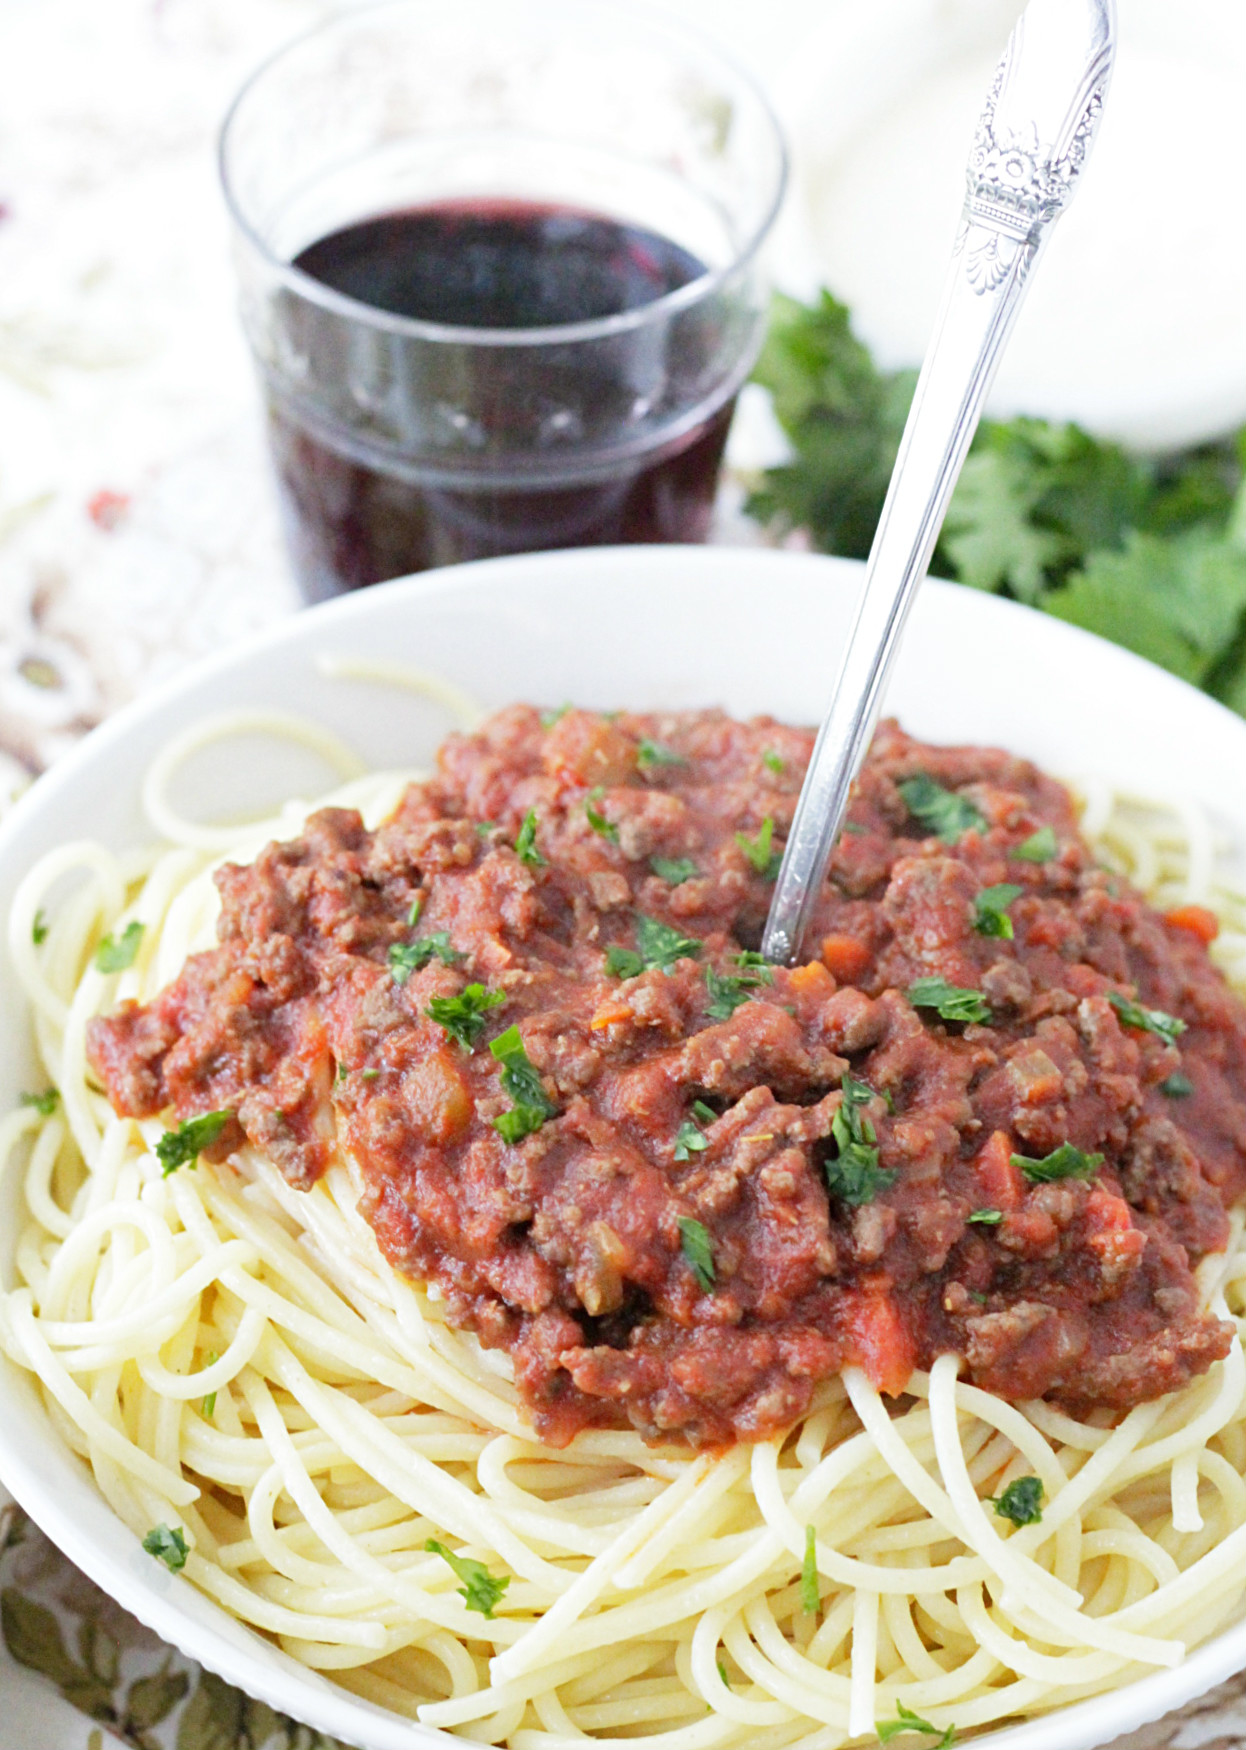 instant pot beef bolognese pasta sauce in a bowl with a glass of red wine on the side